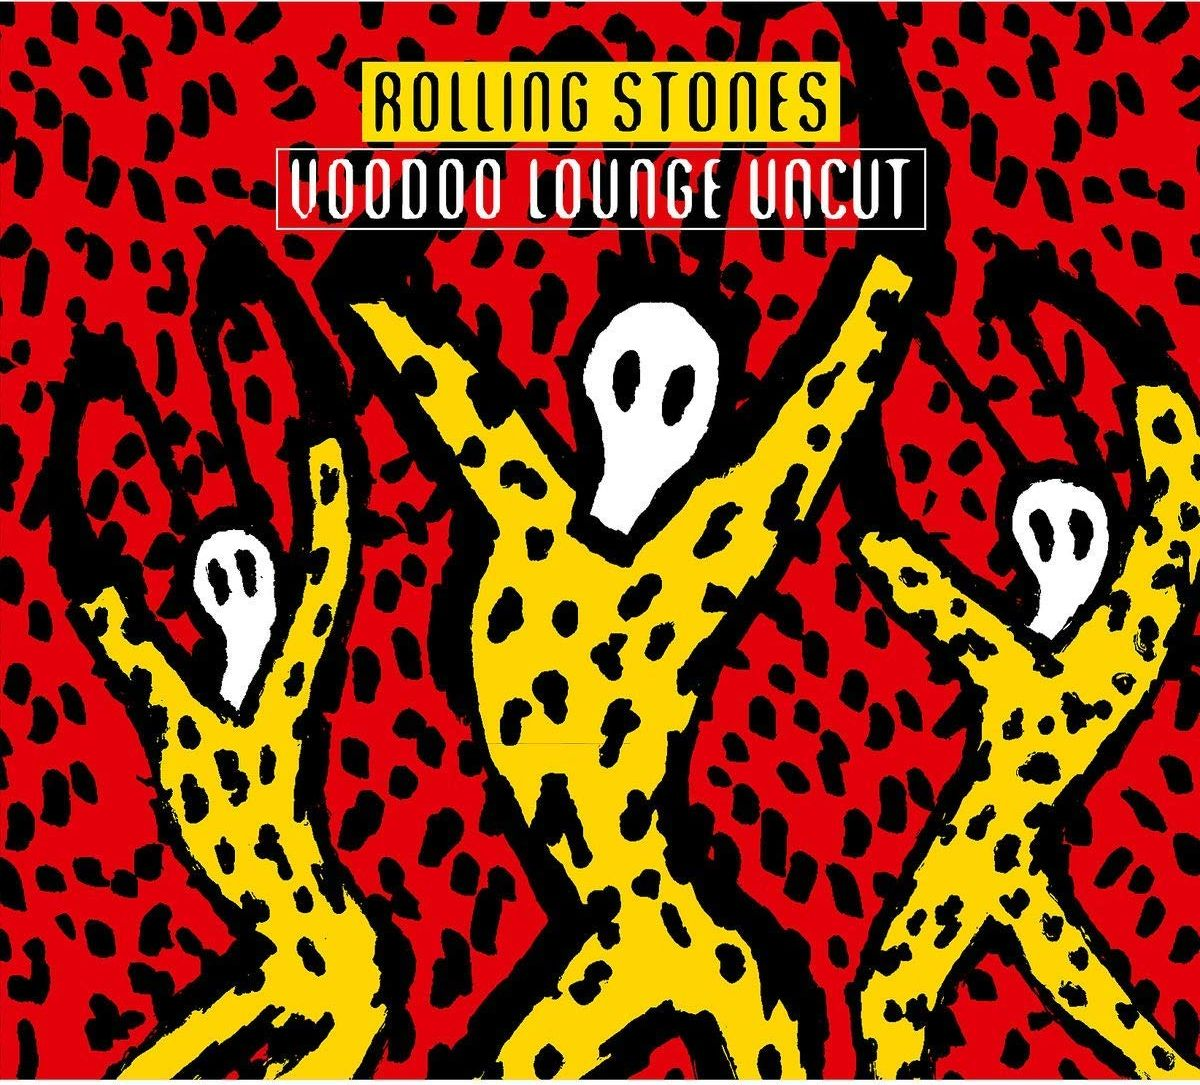 The Rolling Stones The Rolling Stones, Voodoo Lounge Uncut (CD + DVD) моуз эллисон mose allison transfiguration of hiram brown creek bank i love the life i live v 8 ford blues young man mose 2 cd